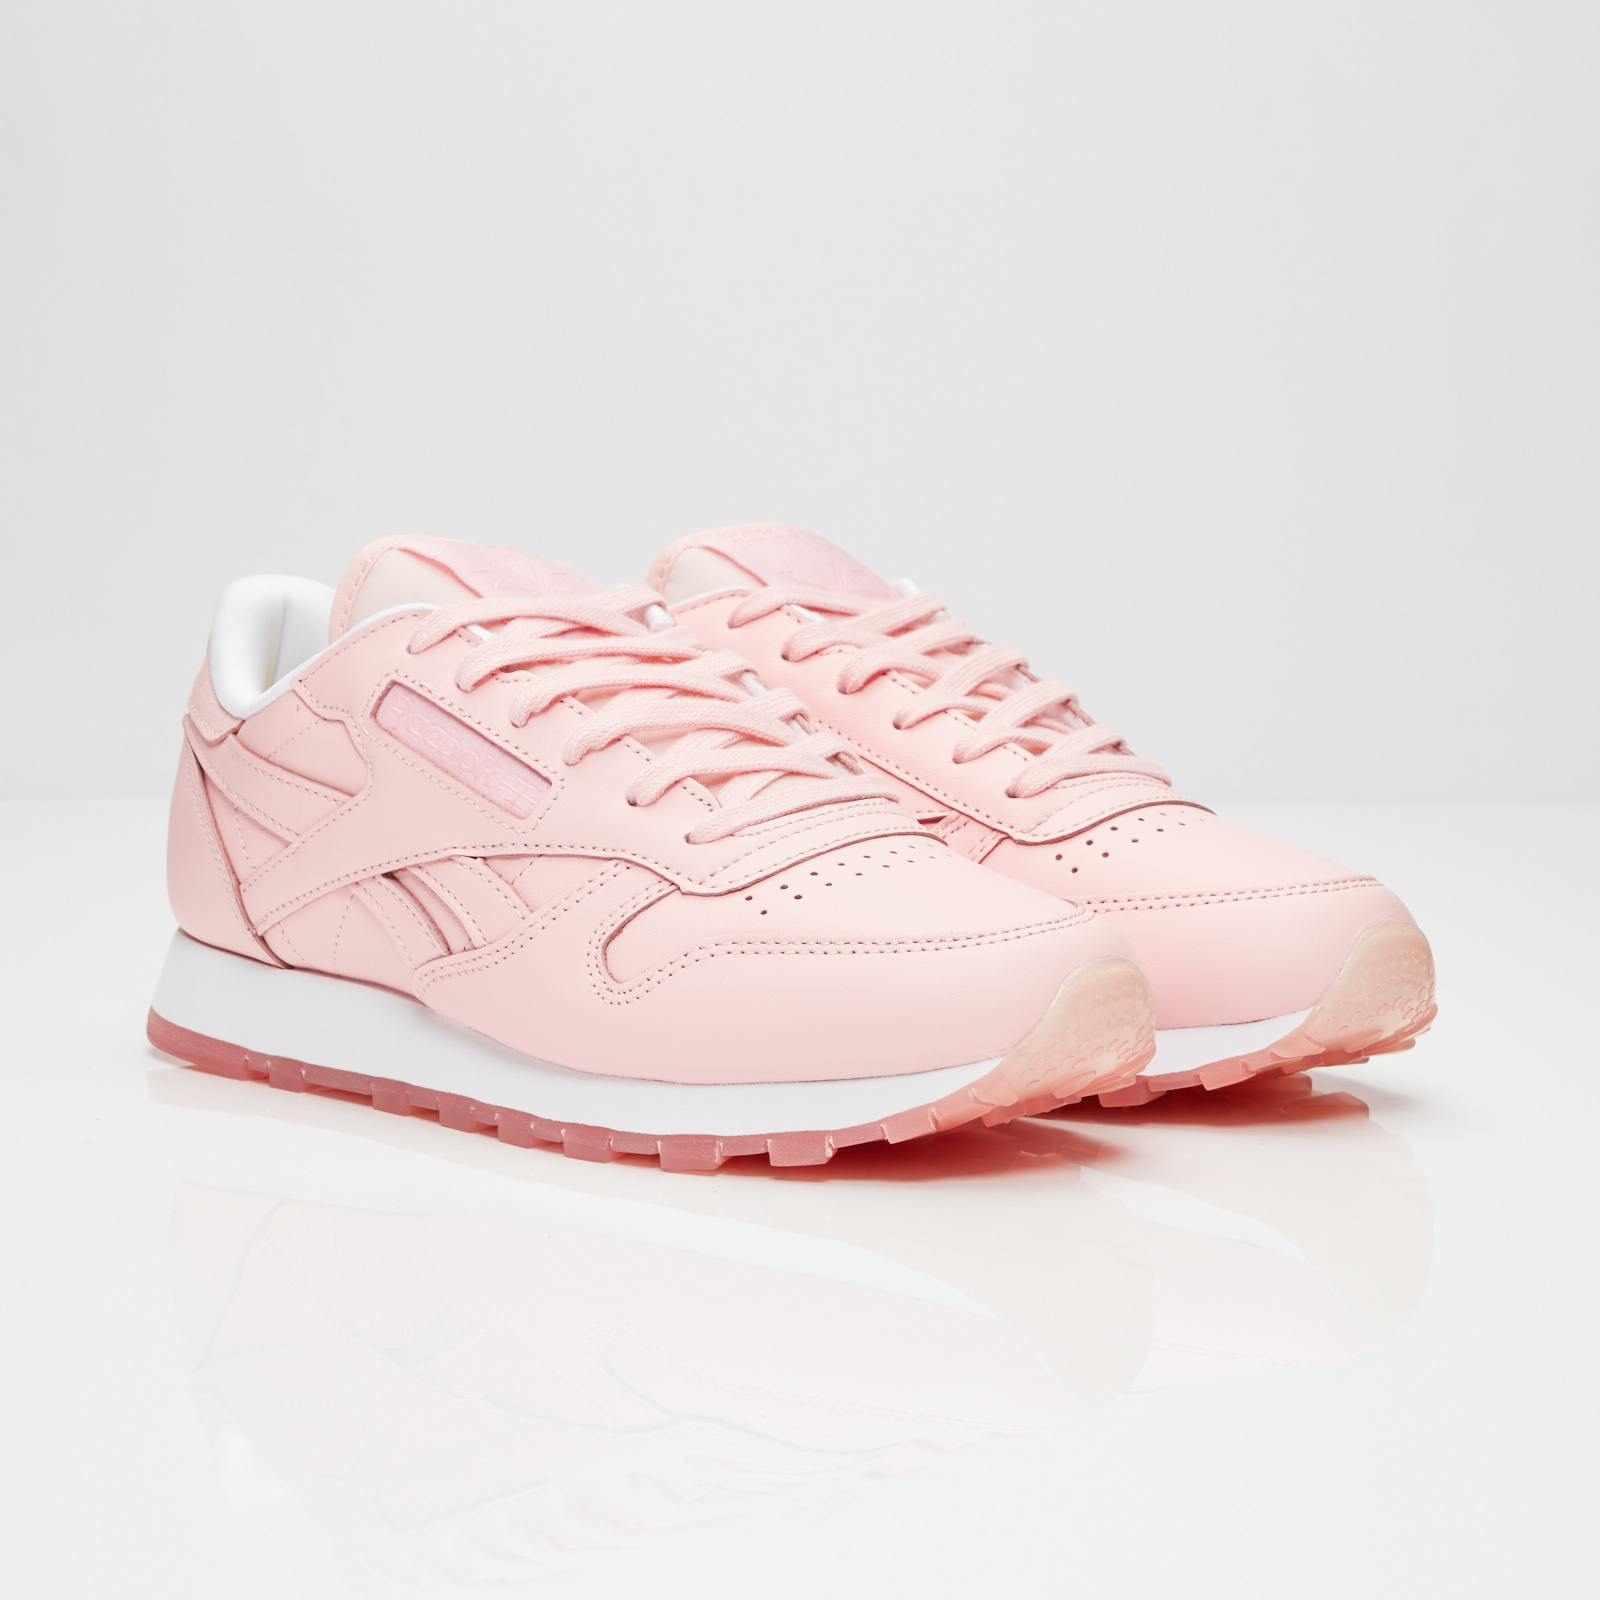 df884051c1d Reebok Classic Leather Face - Bd1327 - Sneakersnstuff